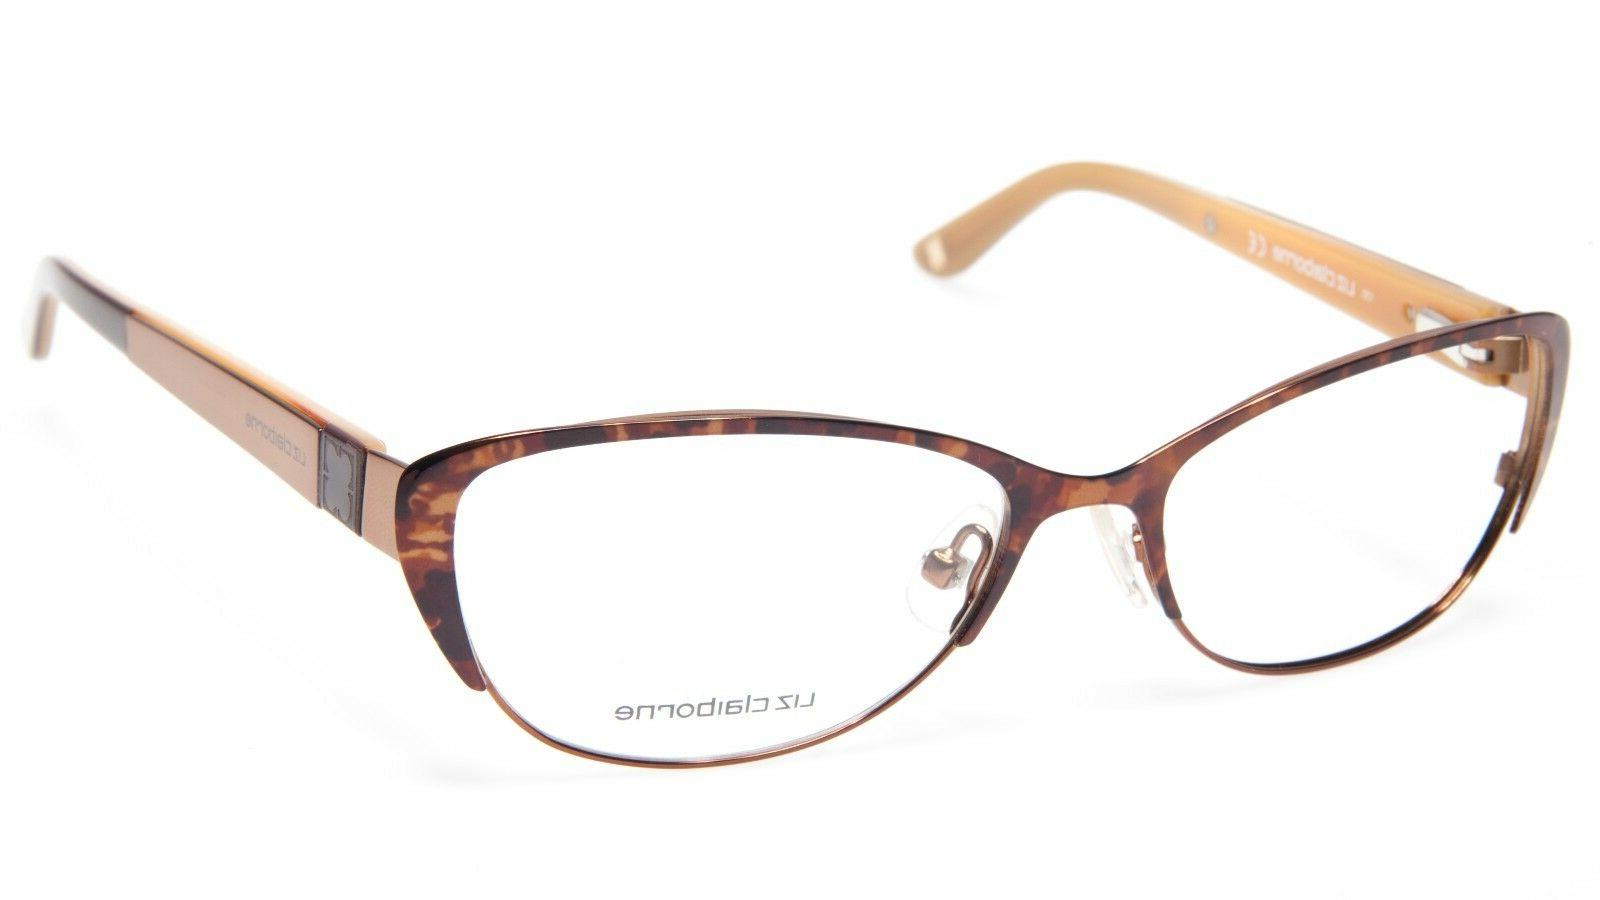 NEW LIZ Claiborne L398 0DC7 DEMI BROWN EYEGLASSES GLASSES 51